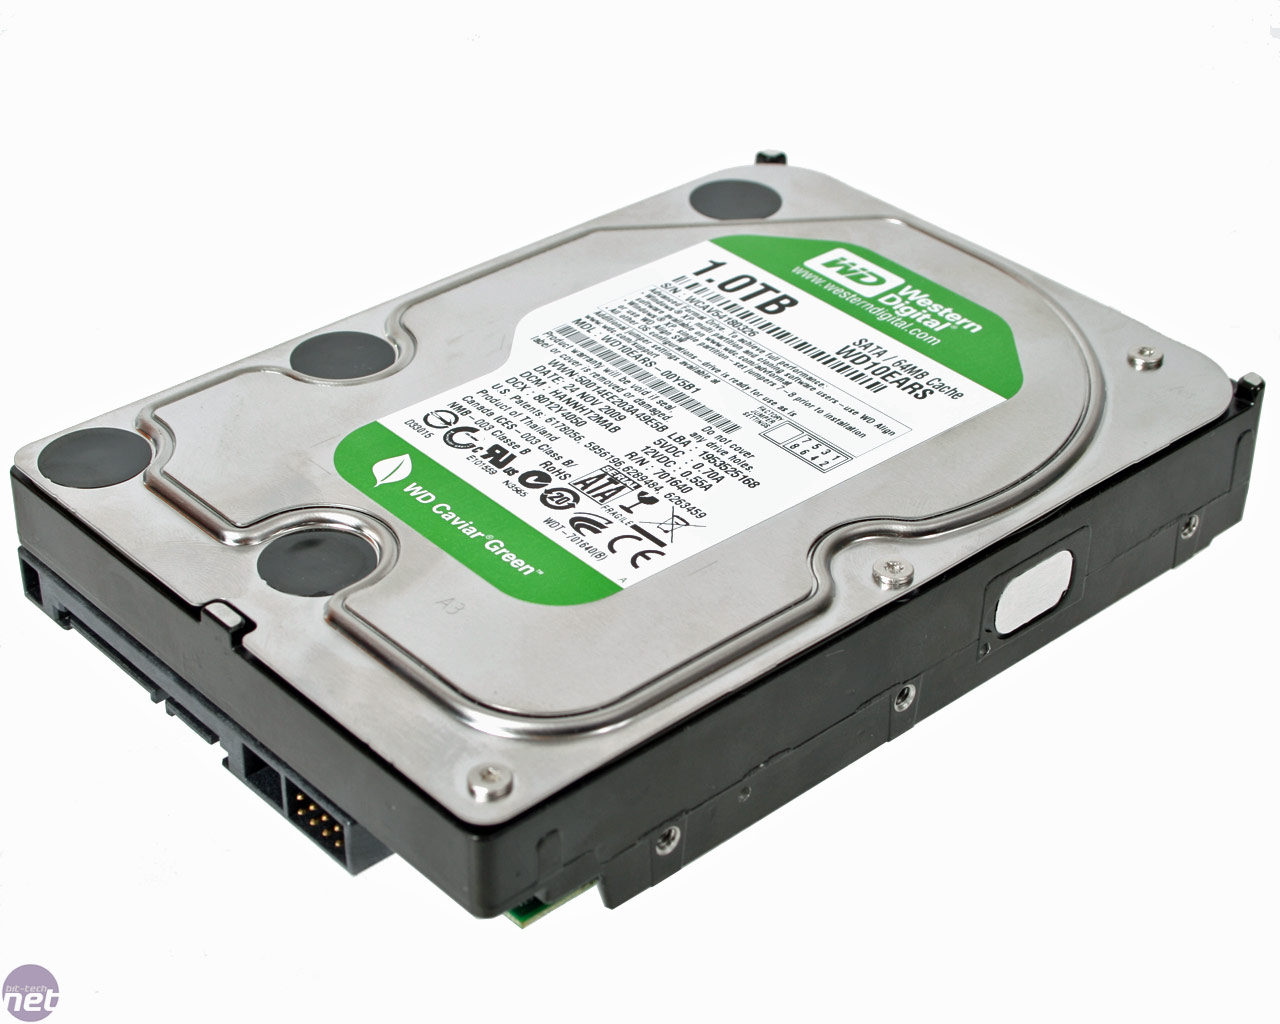 Full information about computer storage devices ...